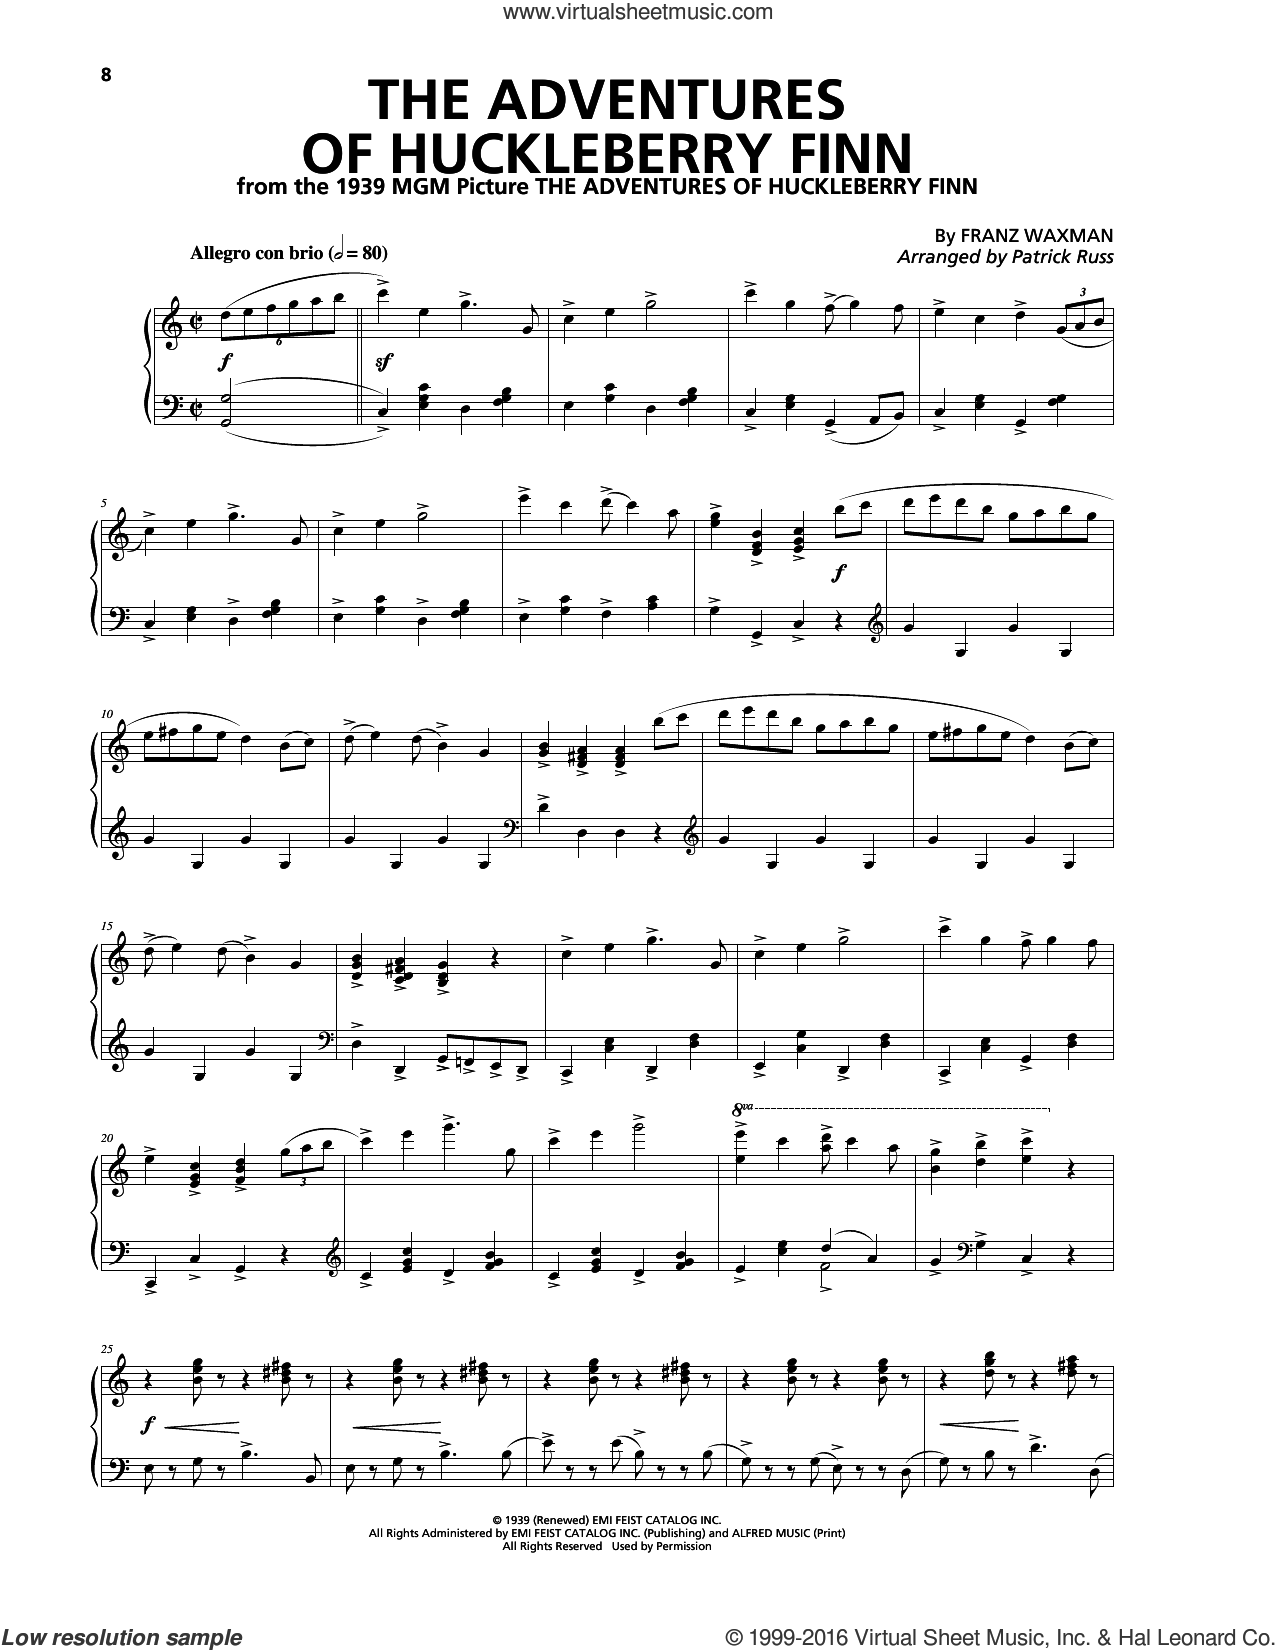 The Adventures Of Huckleberry Finn sheet music for piano solo by Franz Waxman, intermediate skill level